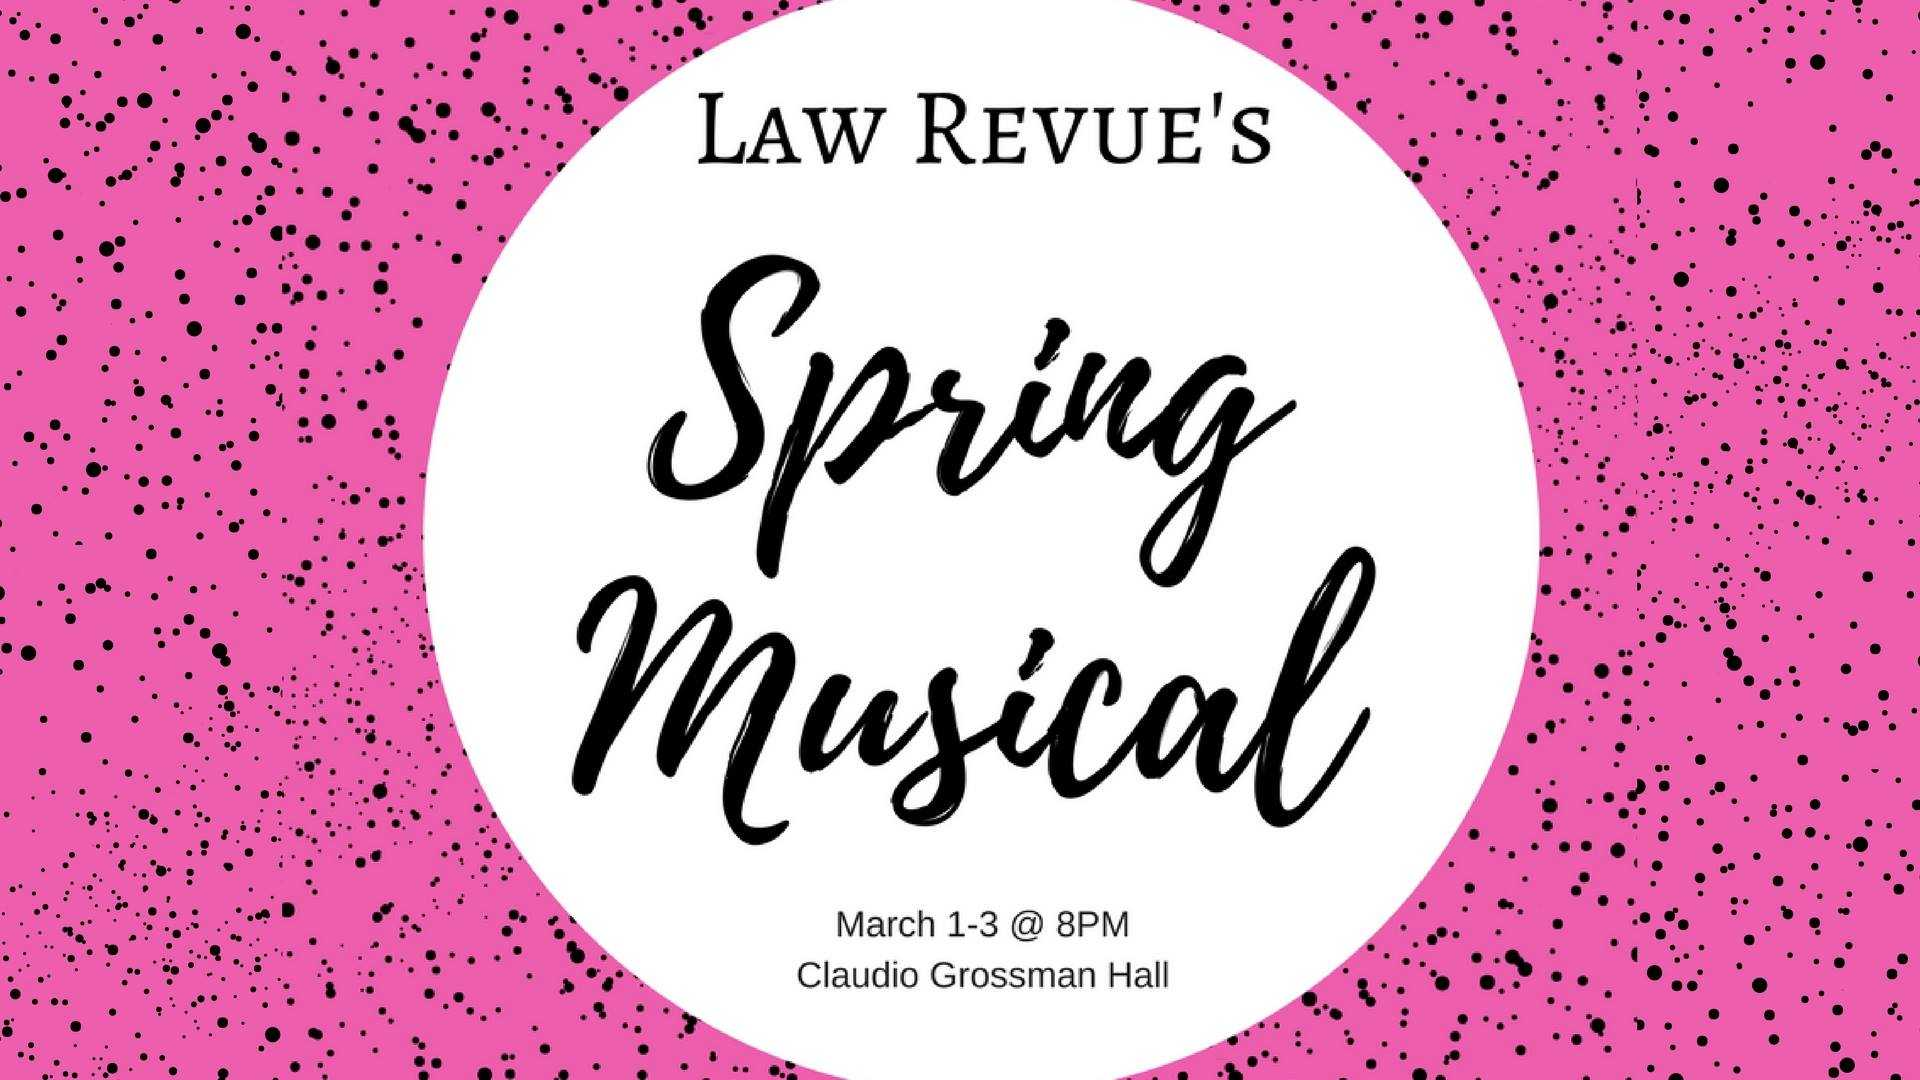 Law Revue 2018 Spring Musical